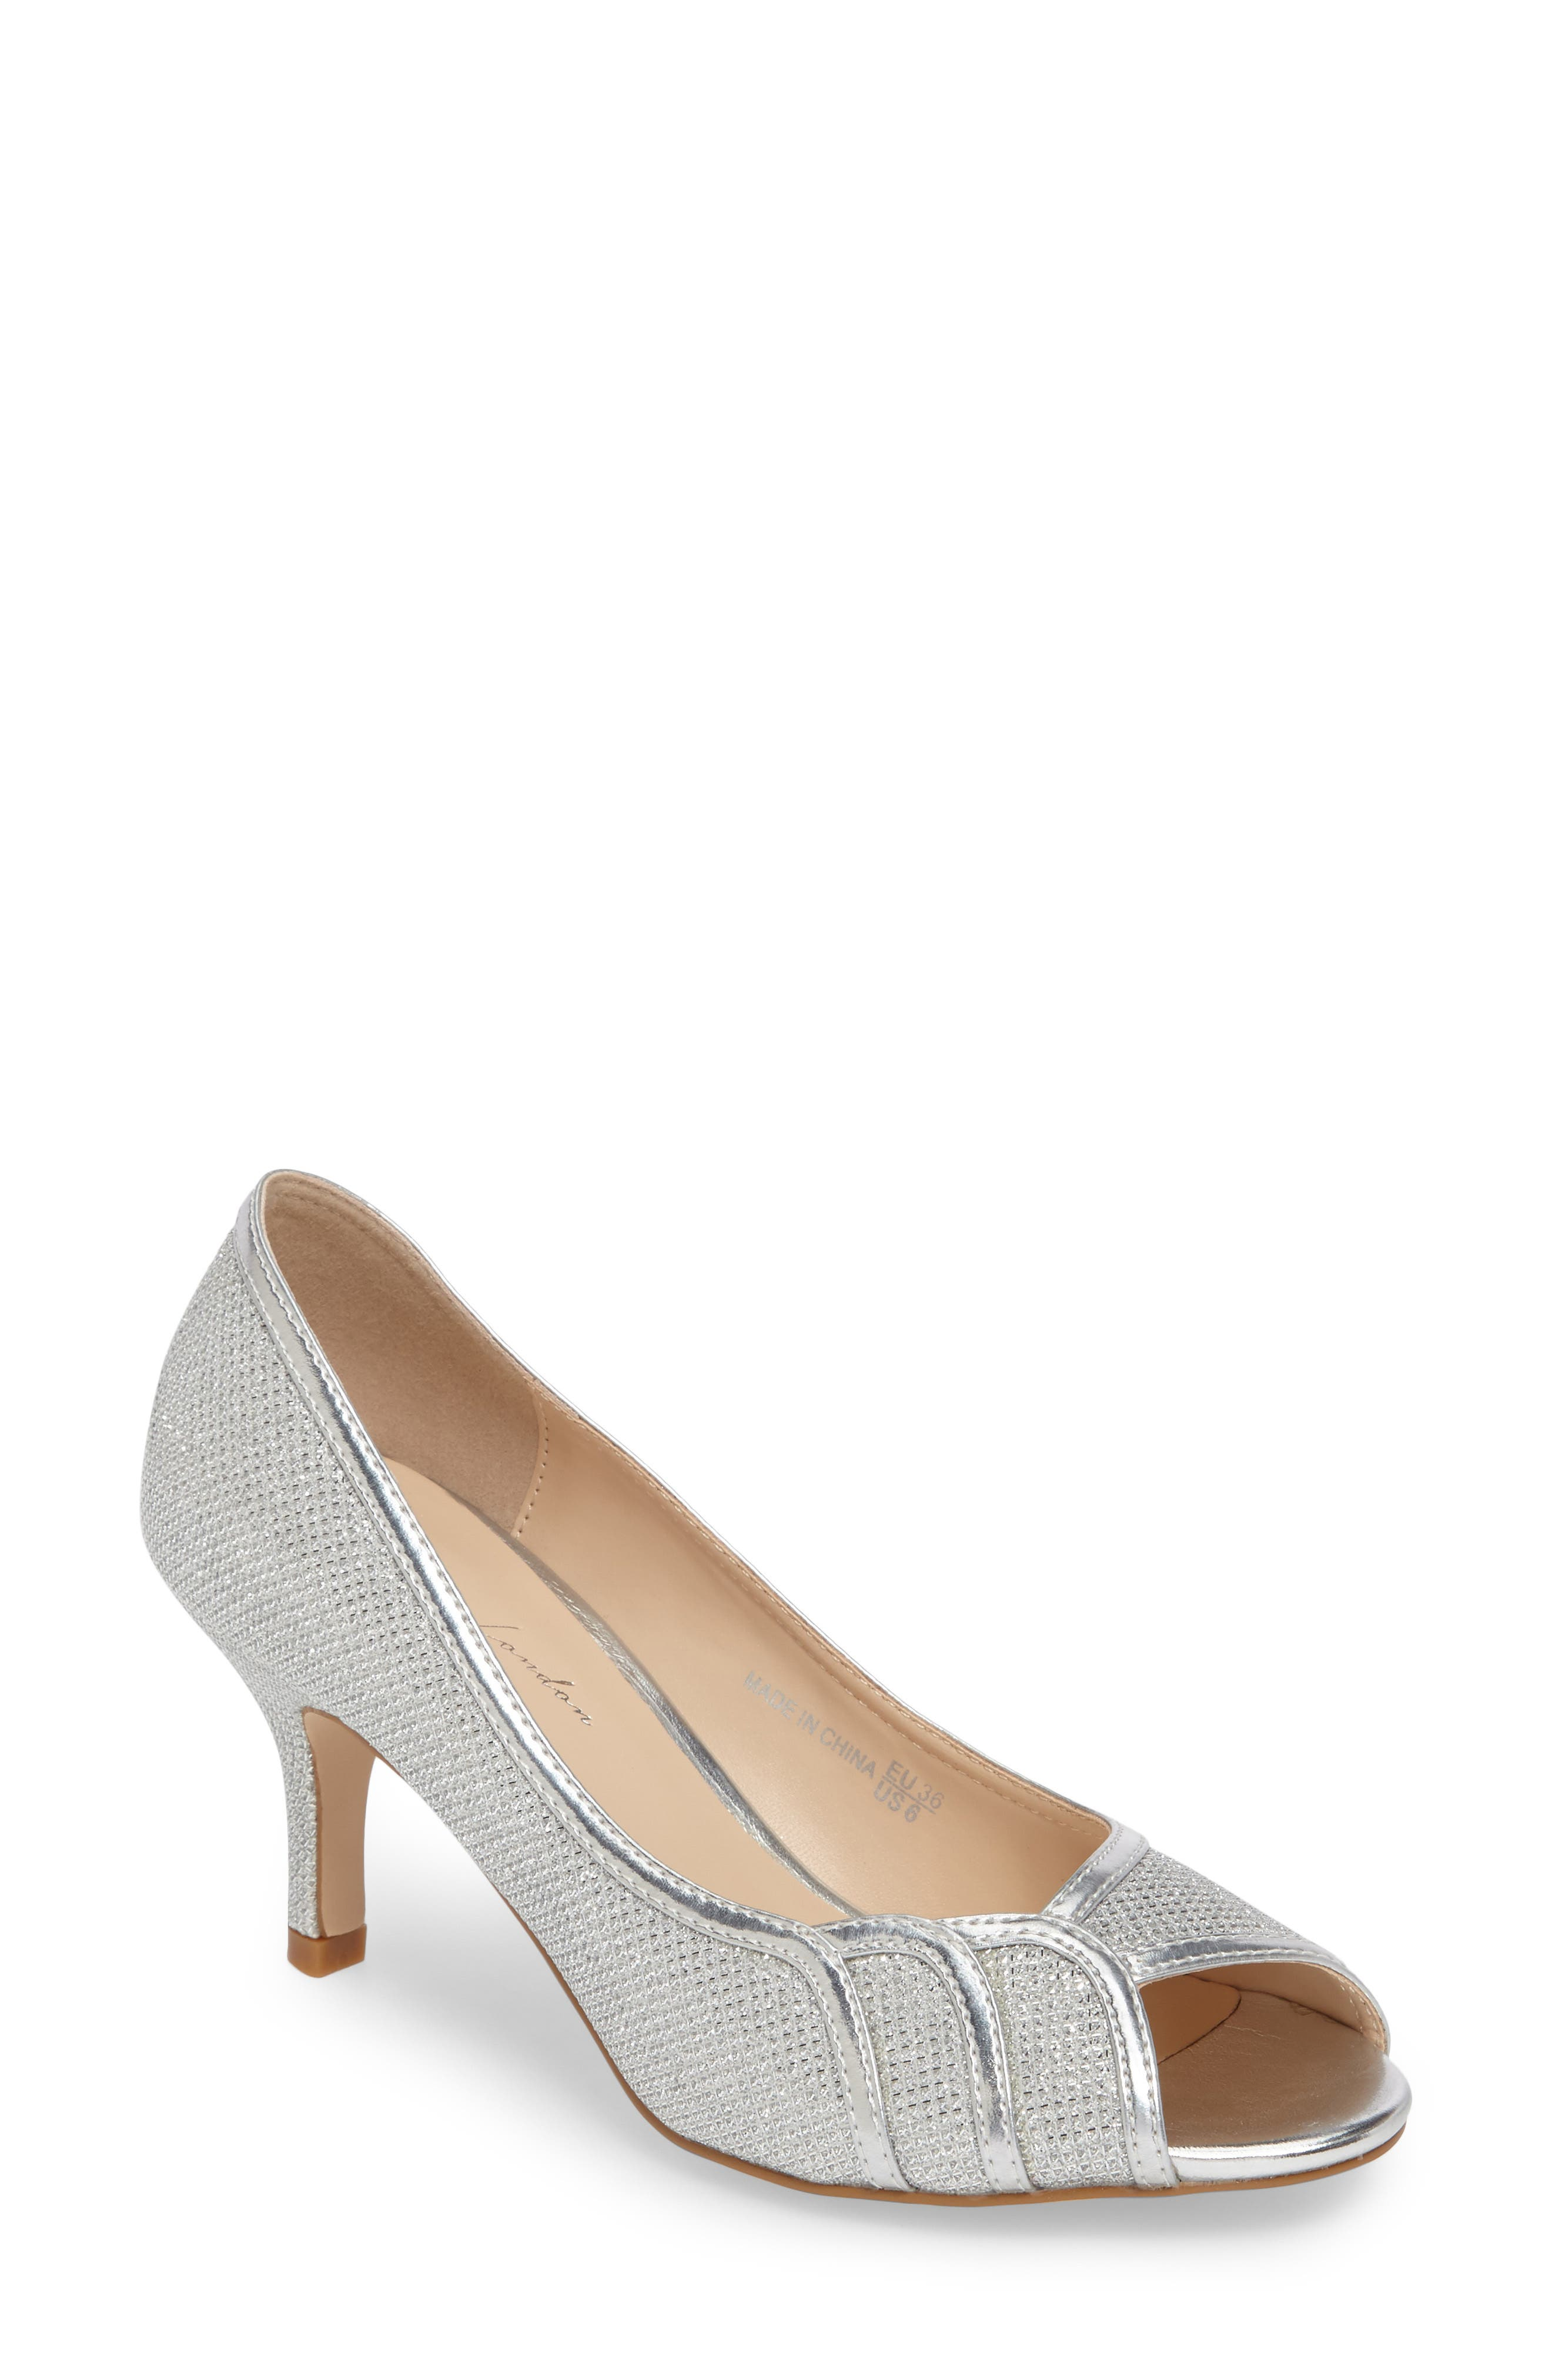 Chester Peep Toe Pump,                         Main,                         color, SILVER